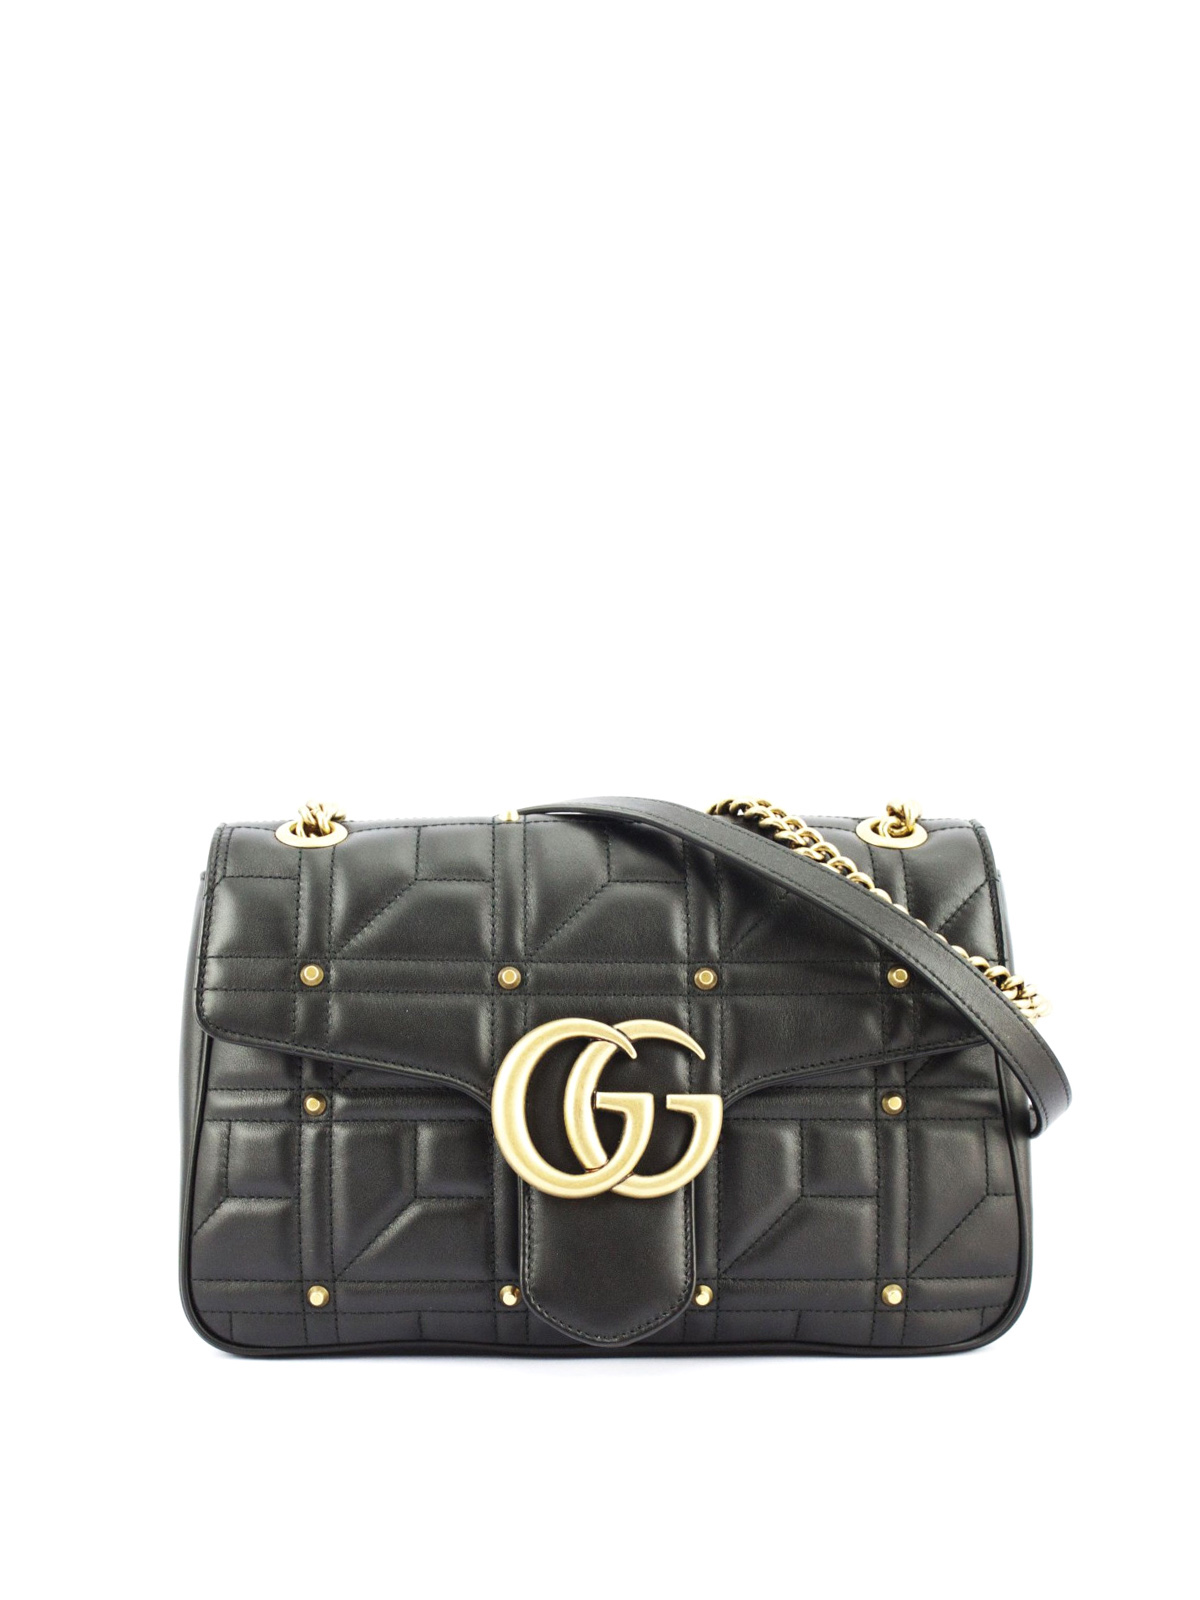 0e4abc8c79267d Gucci - GG Marmont matelassé leather bag - shoulder bags ...